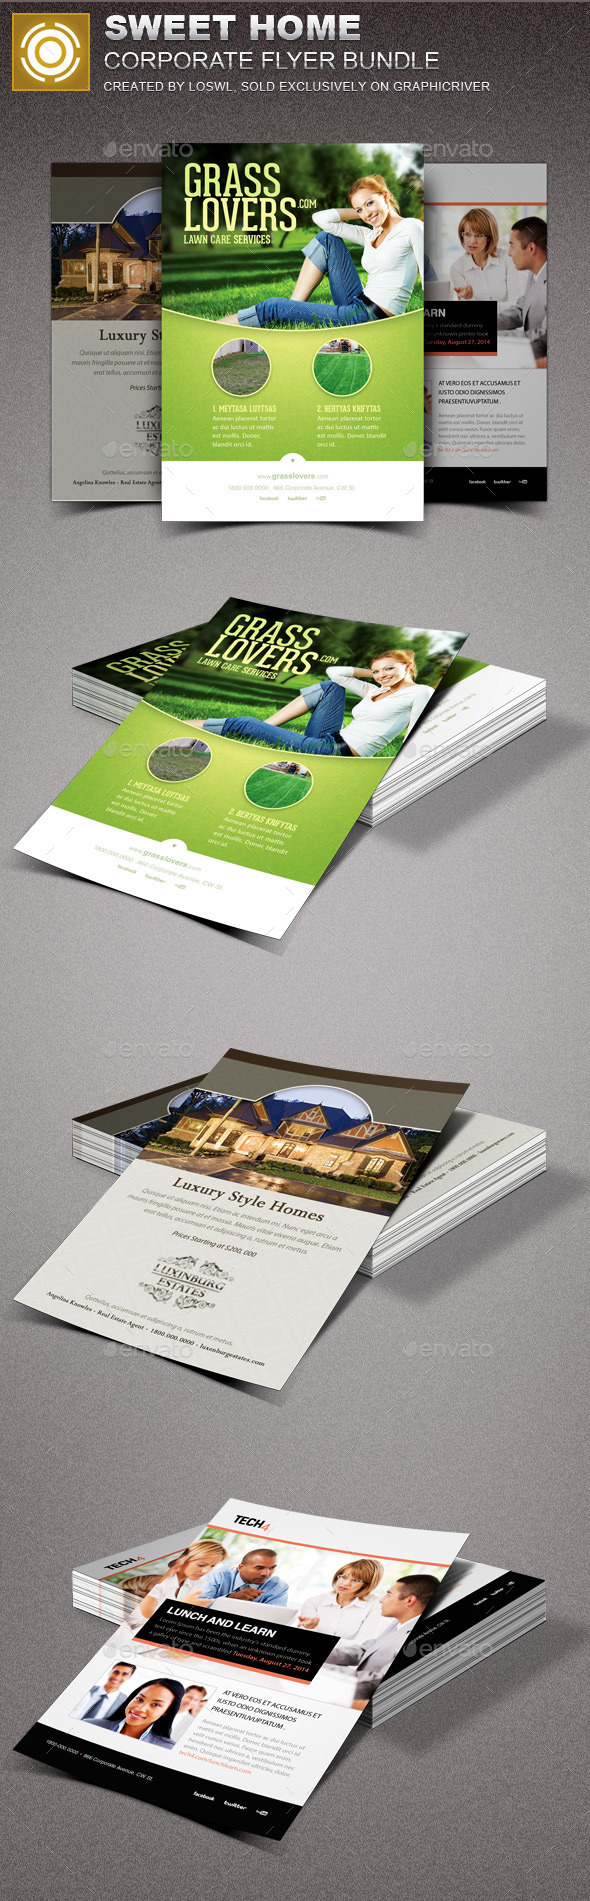 Sweet Home Corporate Flyer Bundle - Corporate Flyers